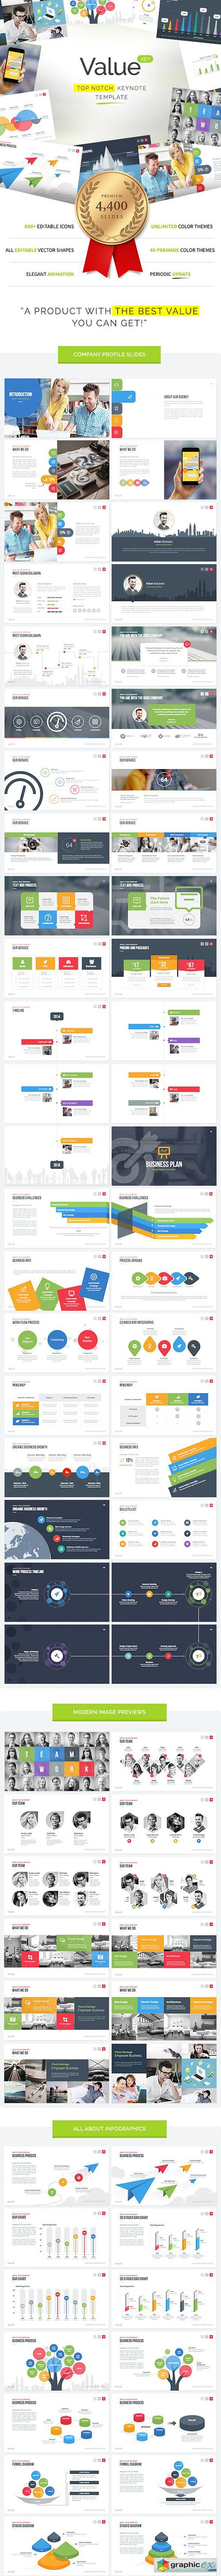 Value - Ultimate Powerpoint Template